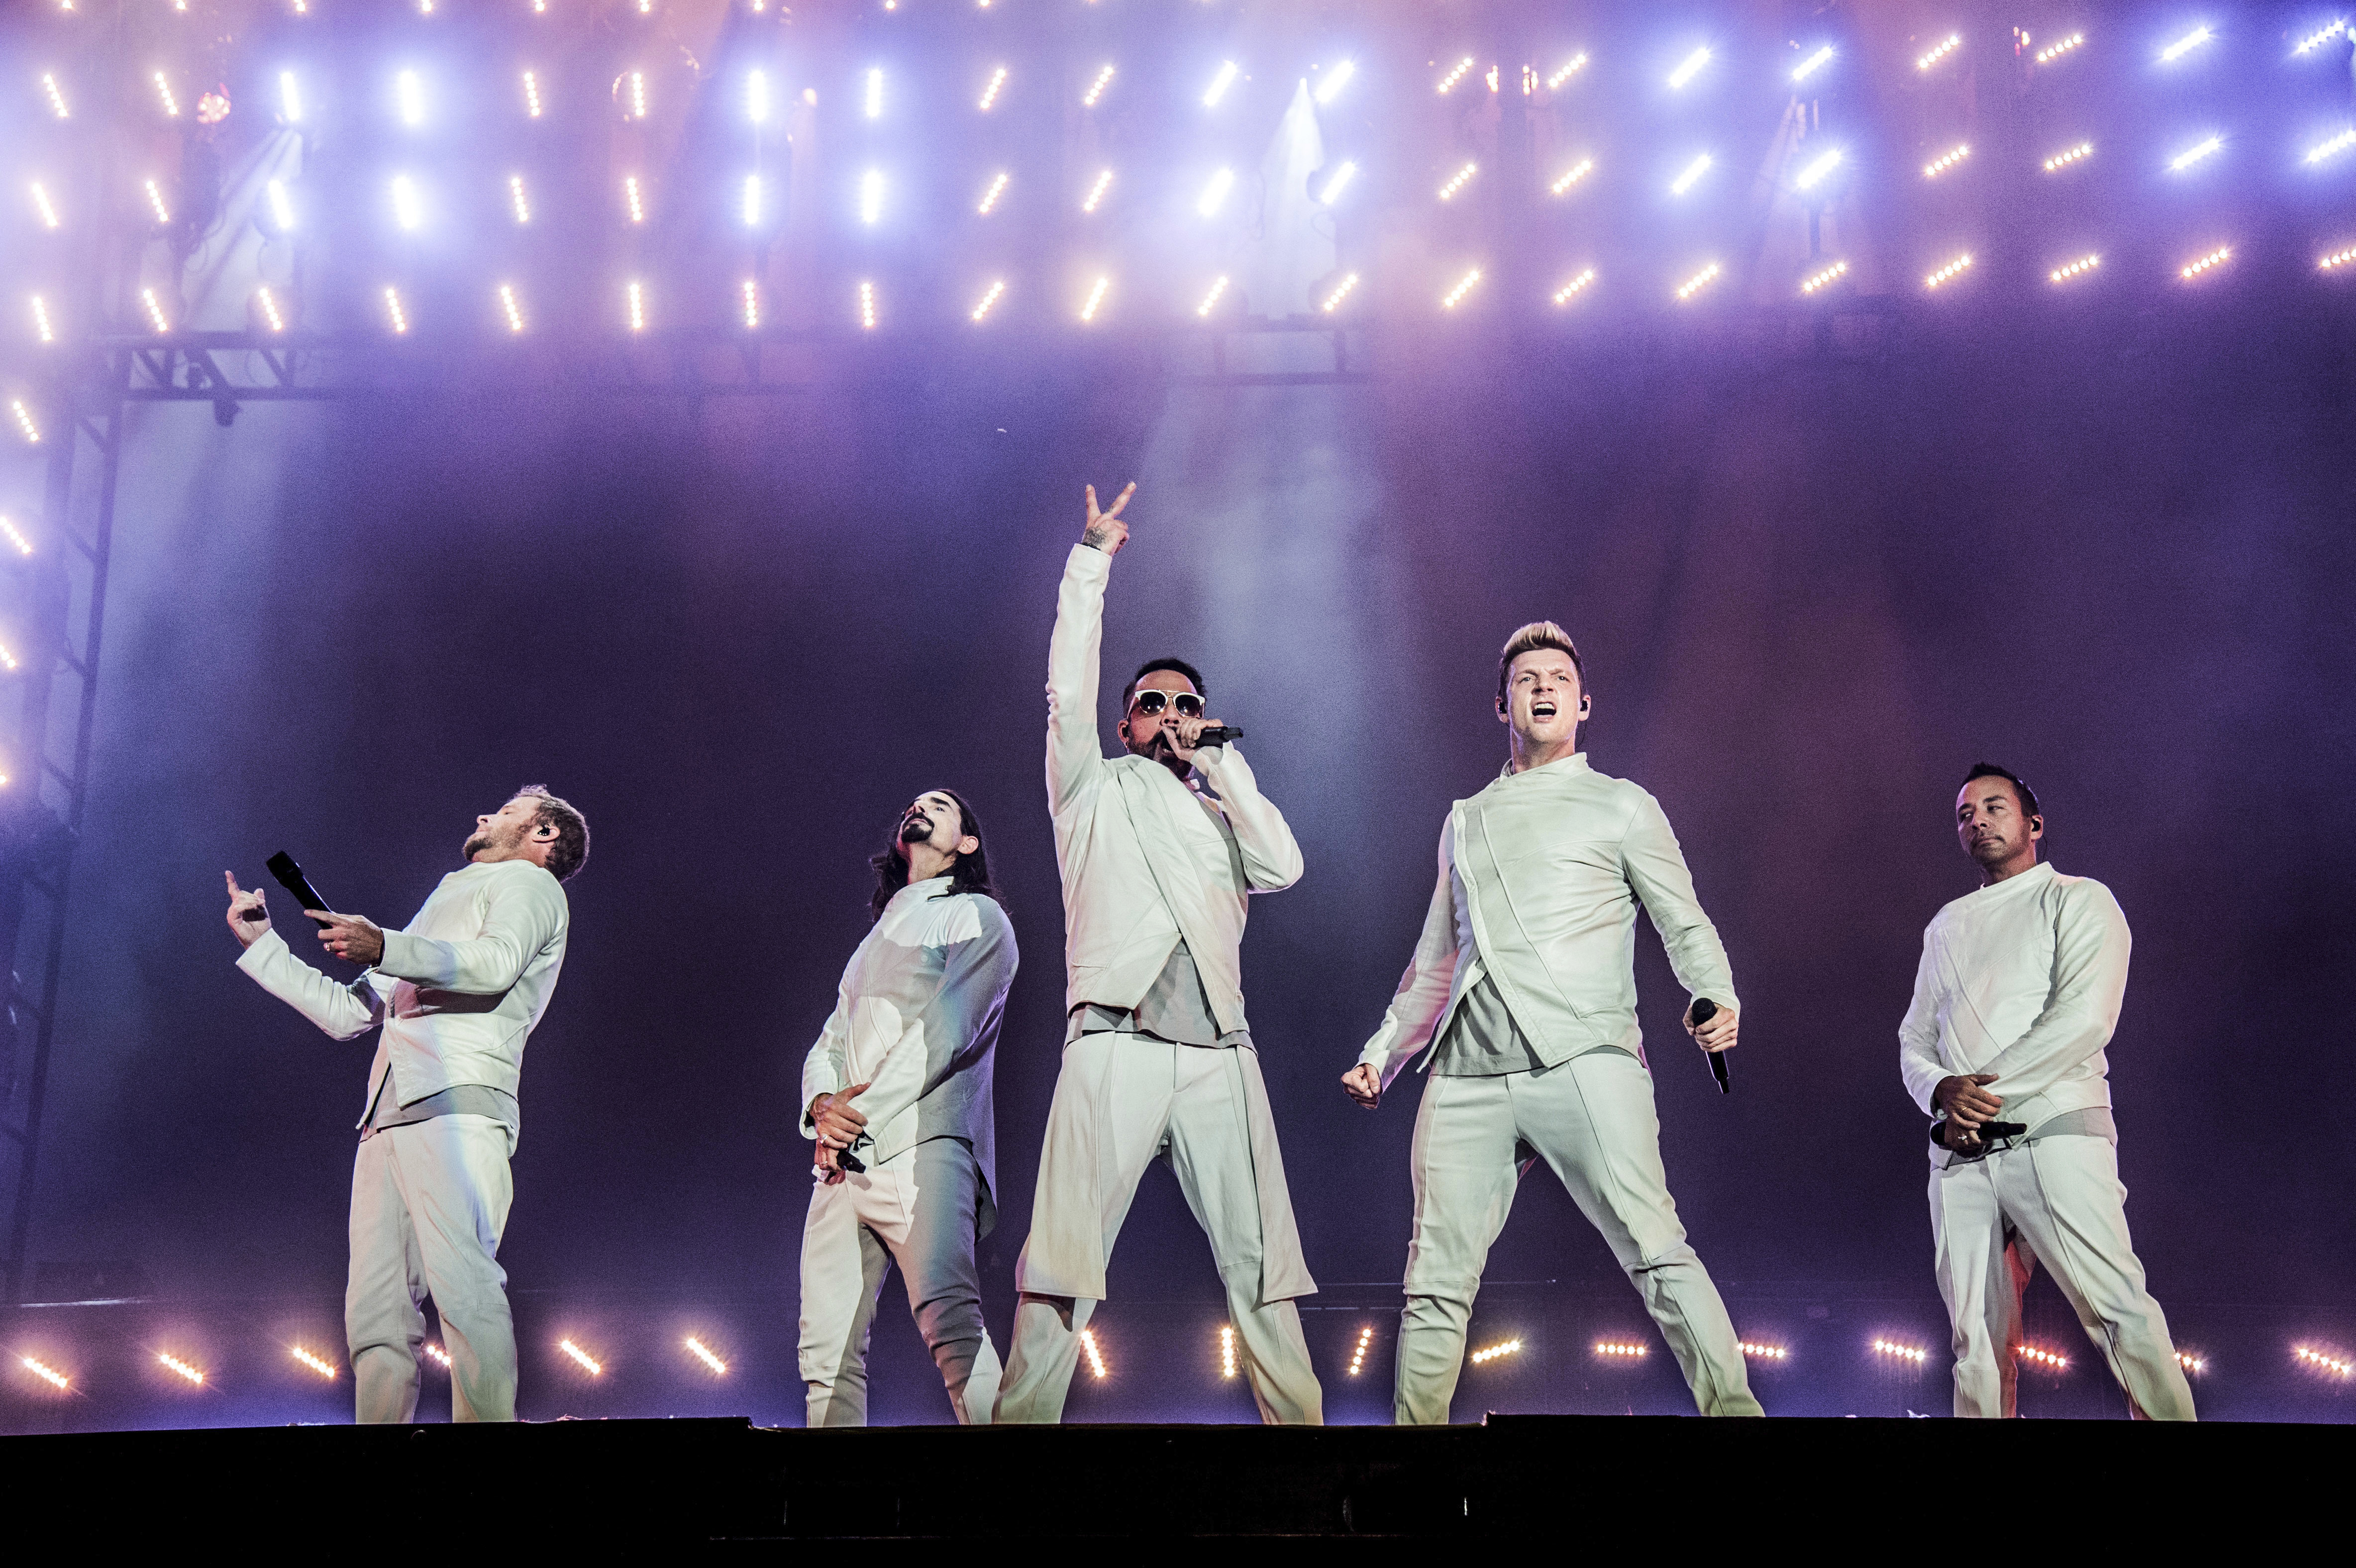 FILE - In this  July 9, 2017, file photo, Brian Littrell, from left, Kevin Richardson, AJ McLean, Nick Carter and Howie Dorough of the Backstreet Boys perform during the Festival d'ete de Quebec in Quebec City, Canada. The Backstreet Boys have a new single. They released u201cDonu2019t Go Break My Heartu201d on Thursday, May 17, 2018, along with a video. Photo: AP